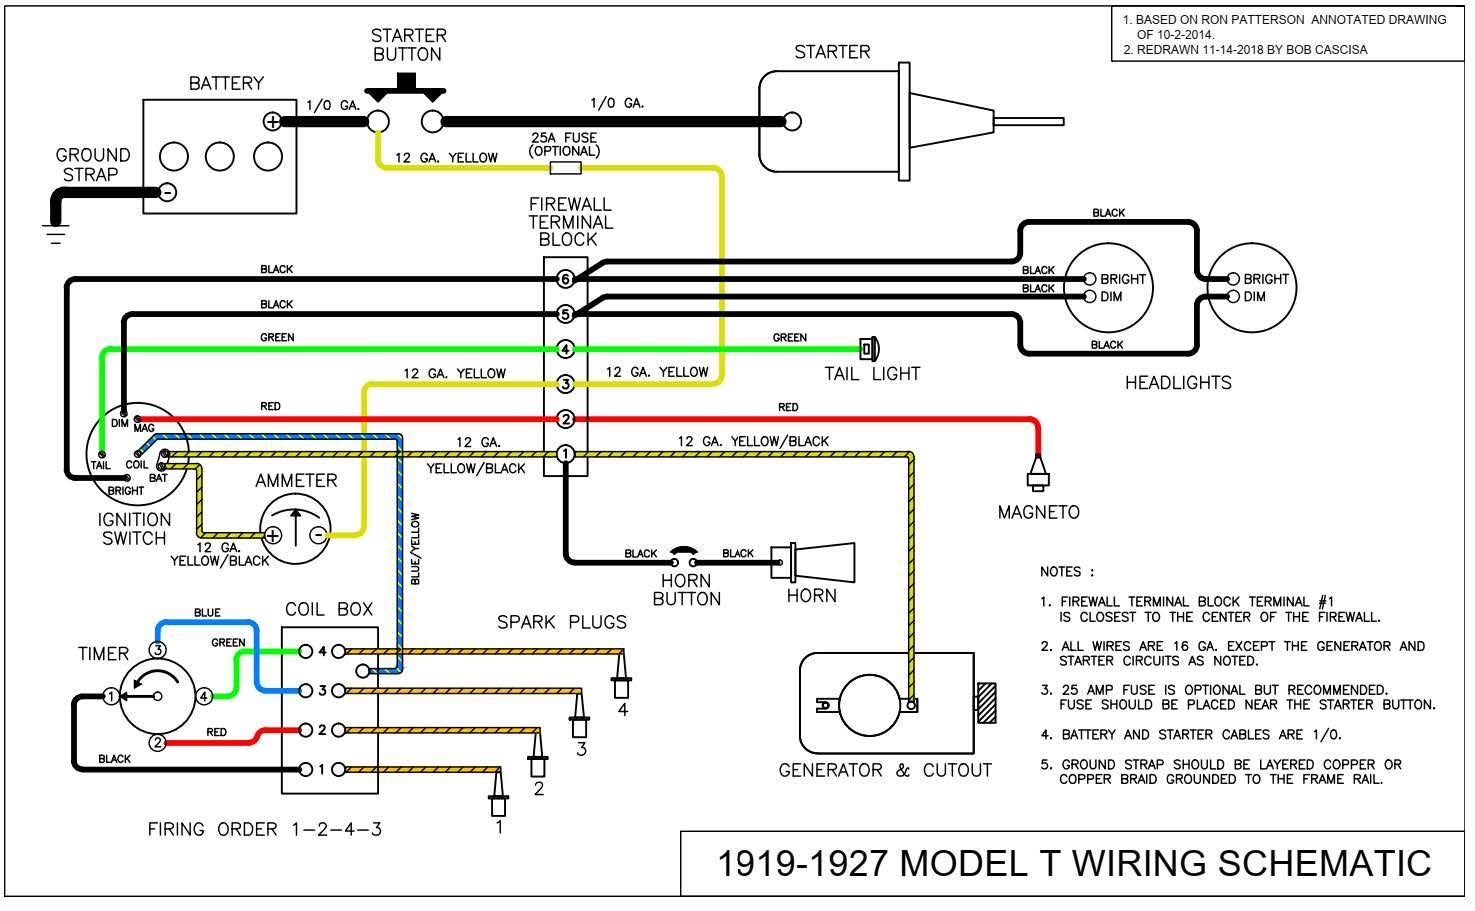 Troubleshooting The Model T Ford Charging System By Ron Patterson And Bob Cascisa Model T Ford Fix Model T Diagram Electrical Components